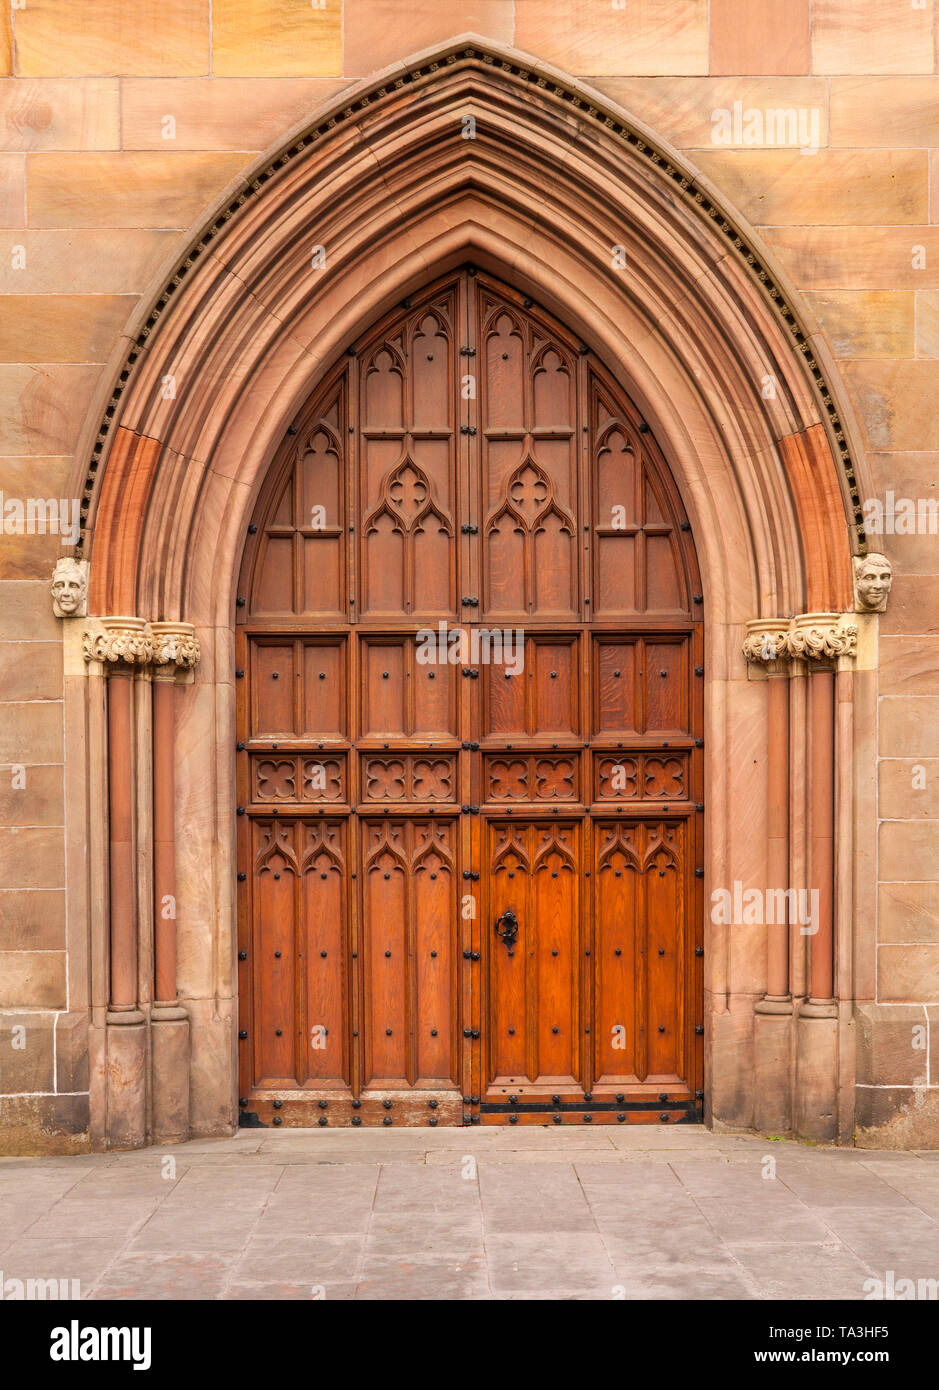 The west door of St Patrick's Cathedral in the city of Armagh, County Armagh, Ulster, Northern Ireland is the seat of the Archbishop of Armagh in the  - Stock Image